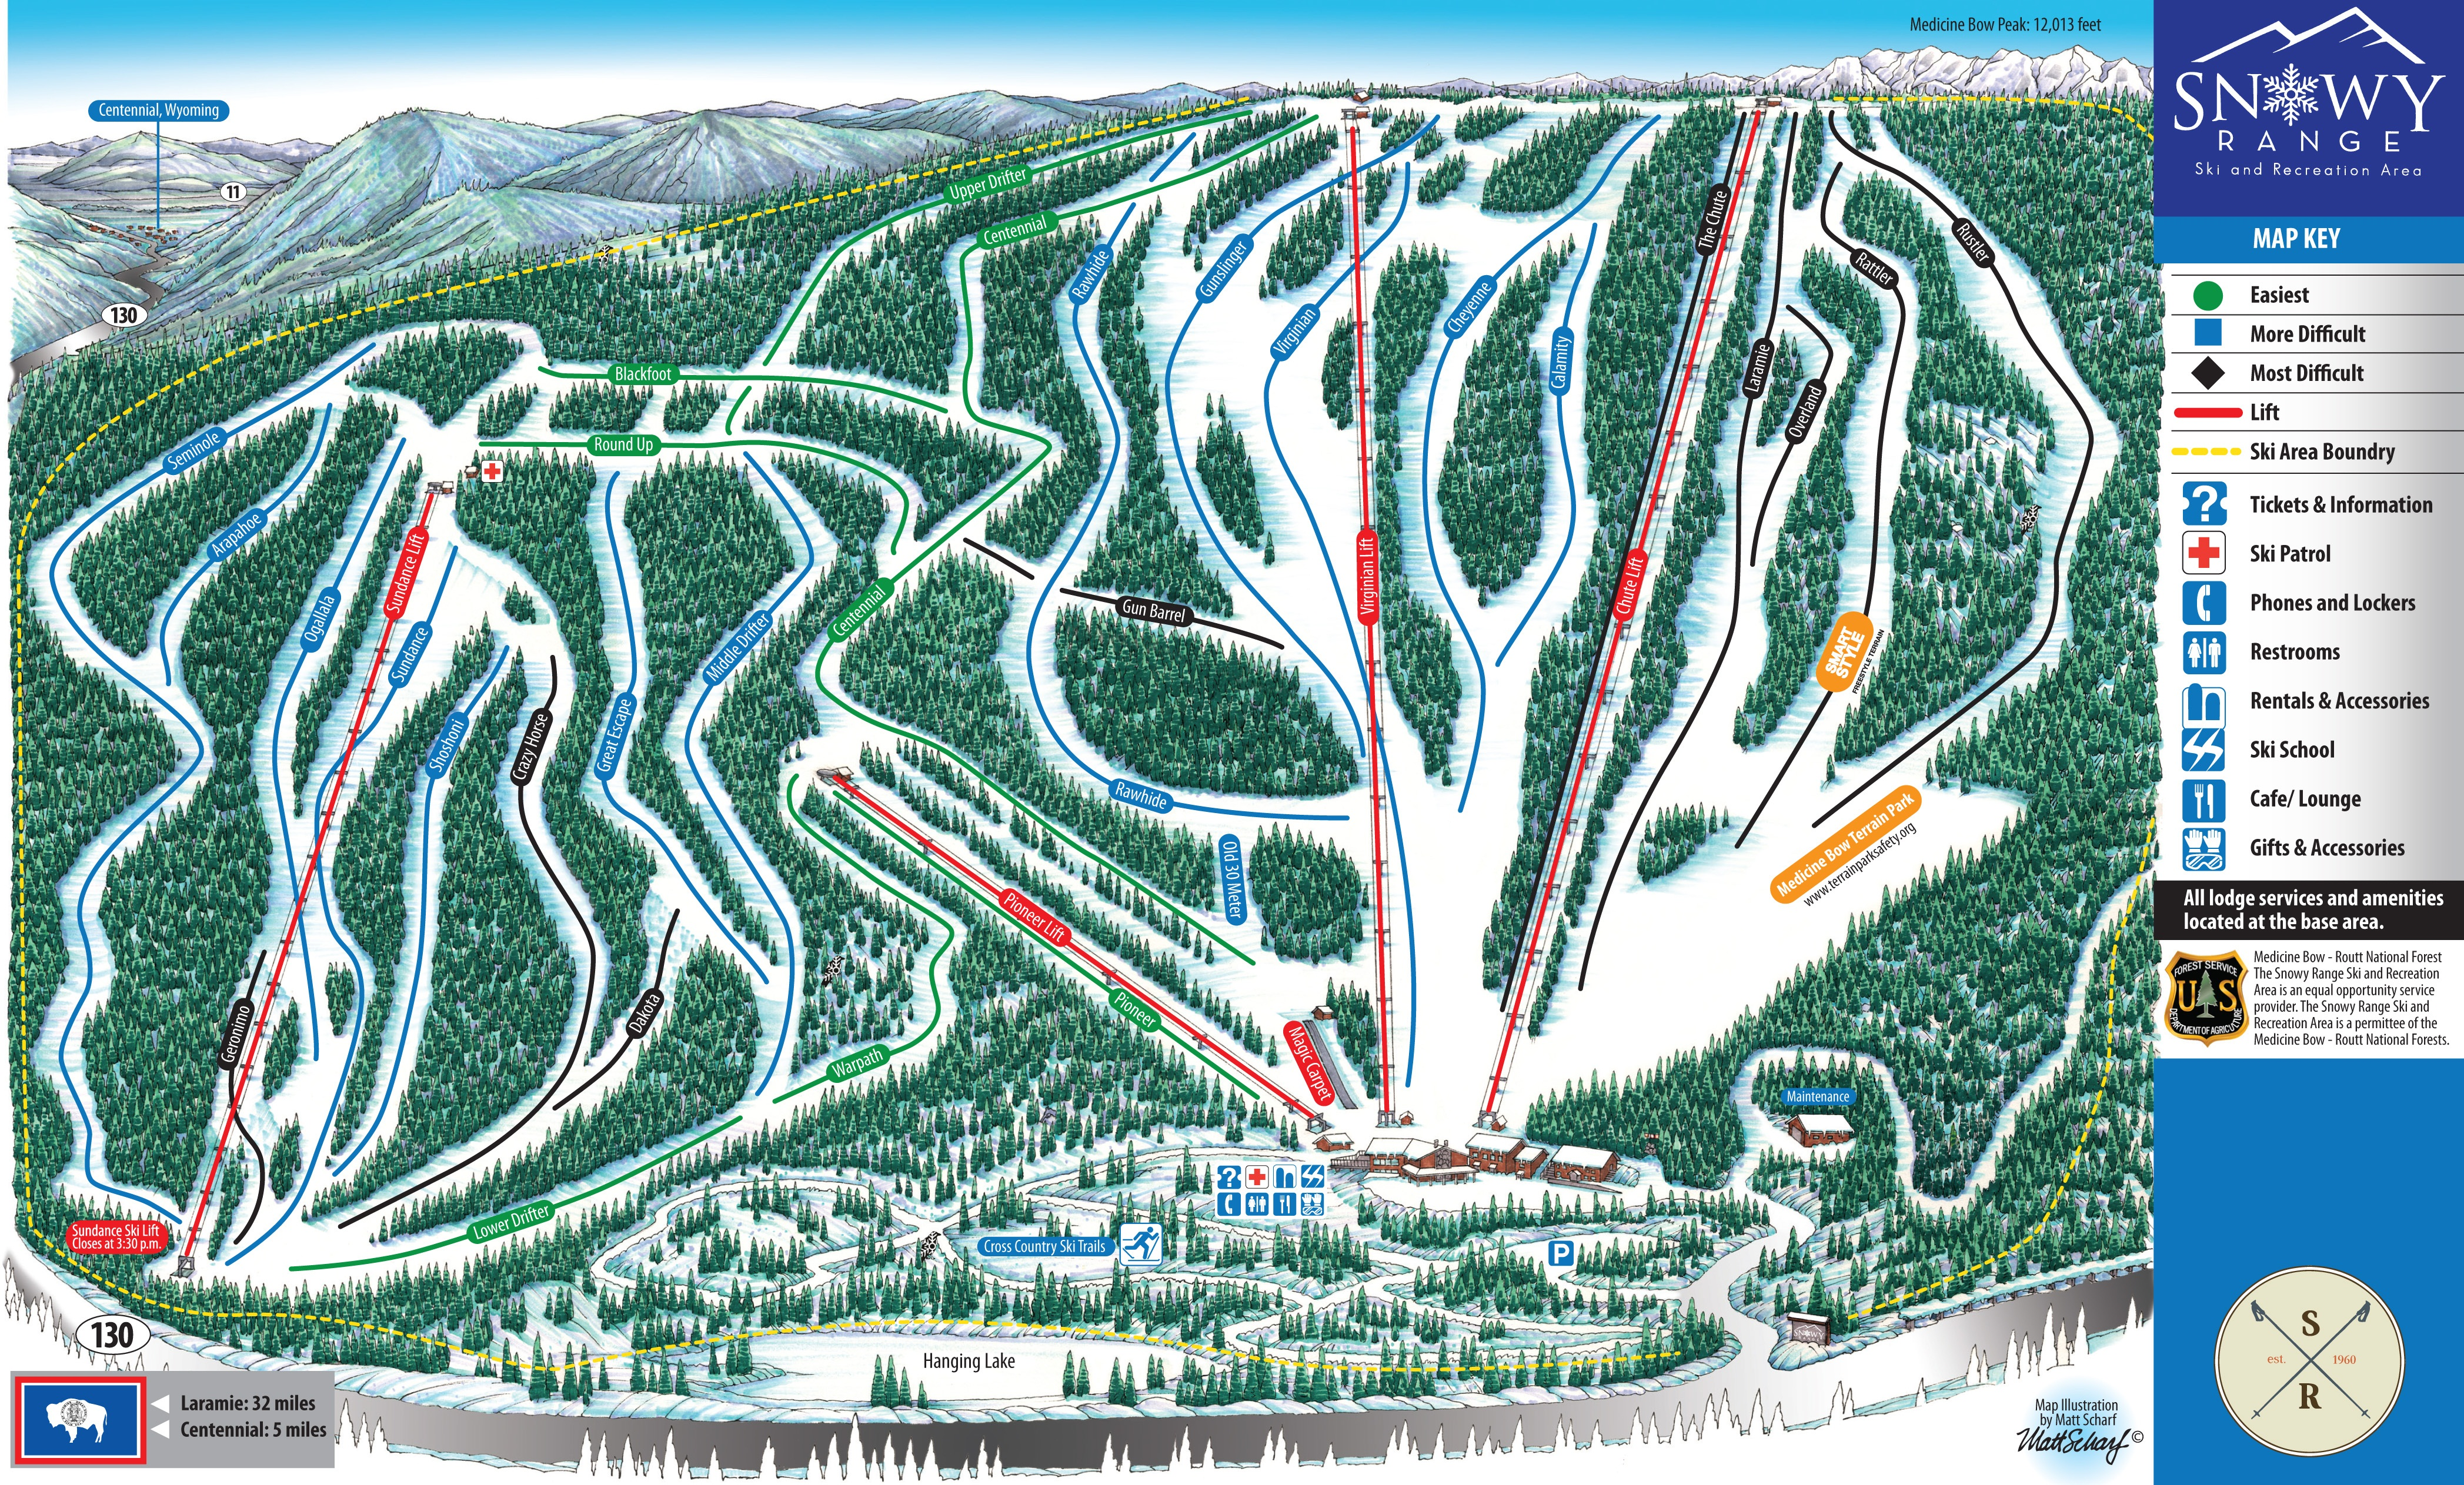 Steamboat s Maddoxes present family friendly affordable Wyoming skiing at Sn